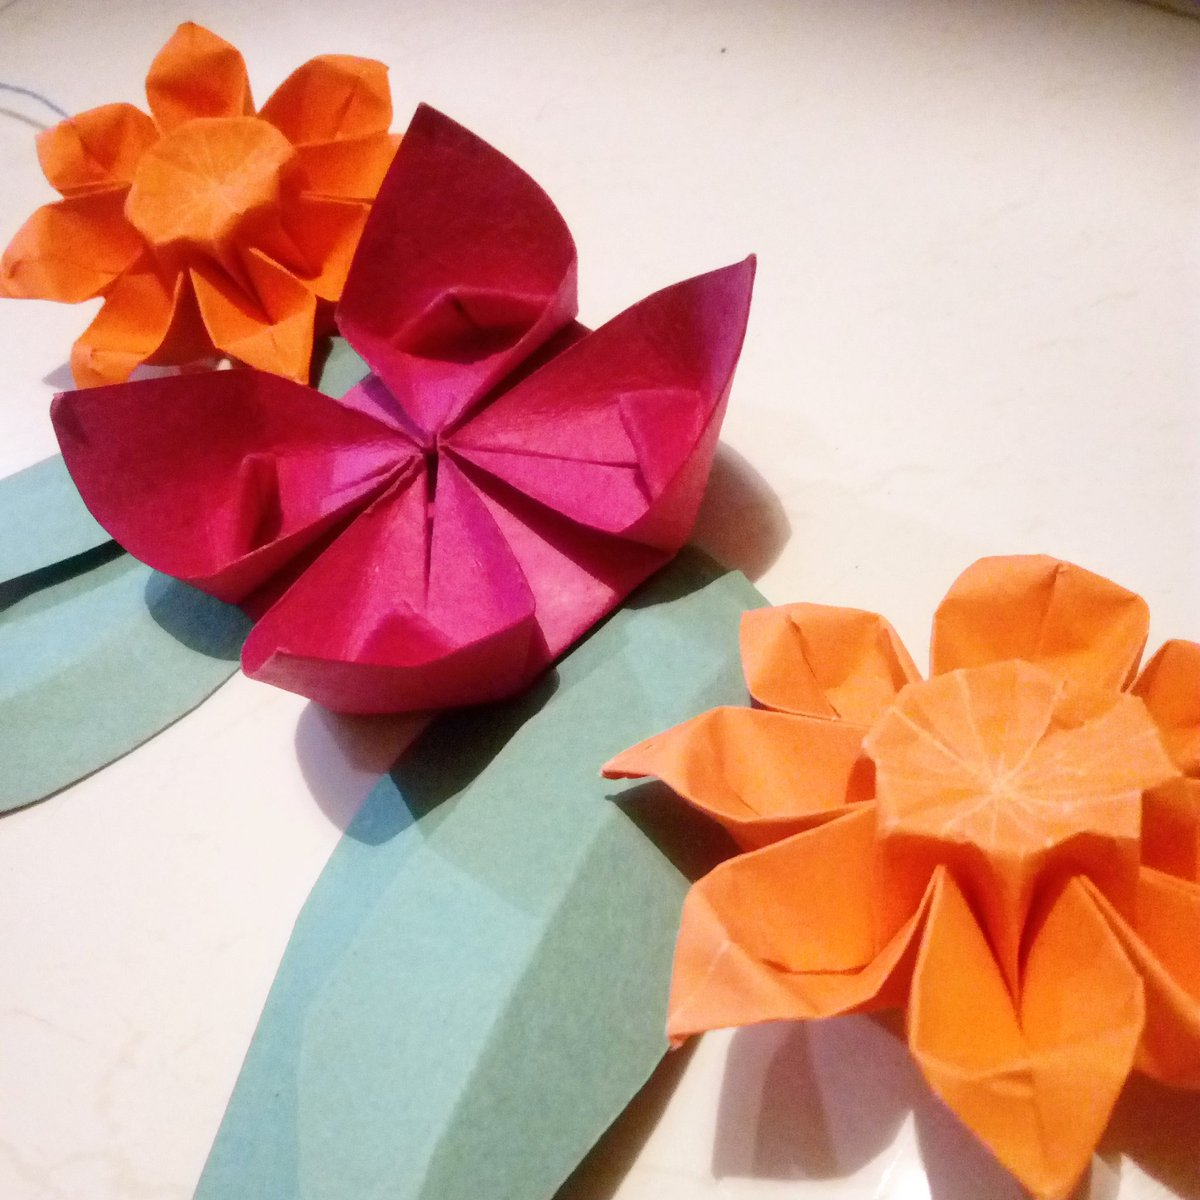 Samir bharadwaj on twitter stringing together the leaves and the it manages to look quite traditional while being that little bit different papercraft origami diy flowers designer diwalipicitterepyxoy8fcu mightylinksfo